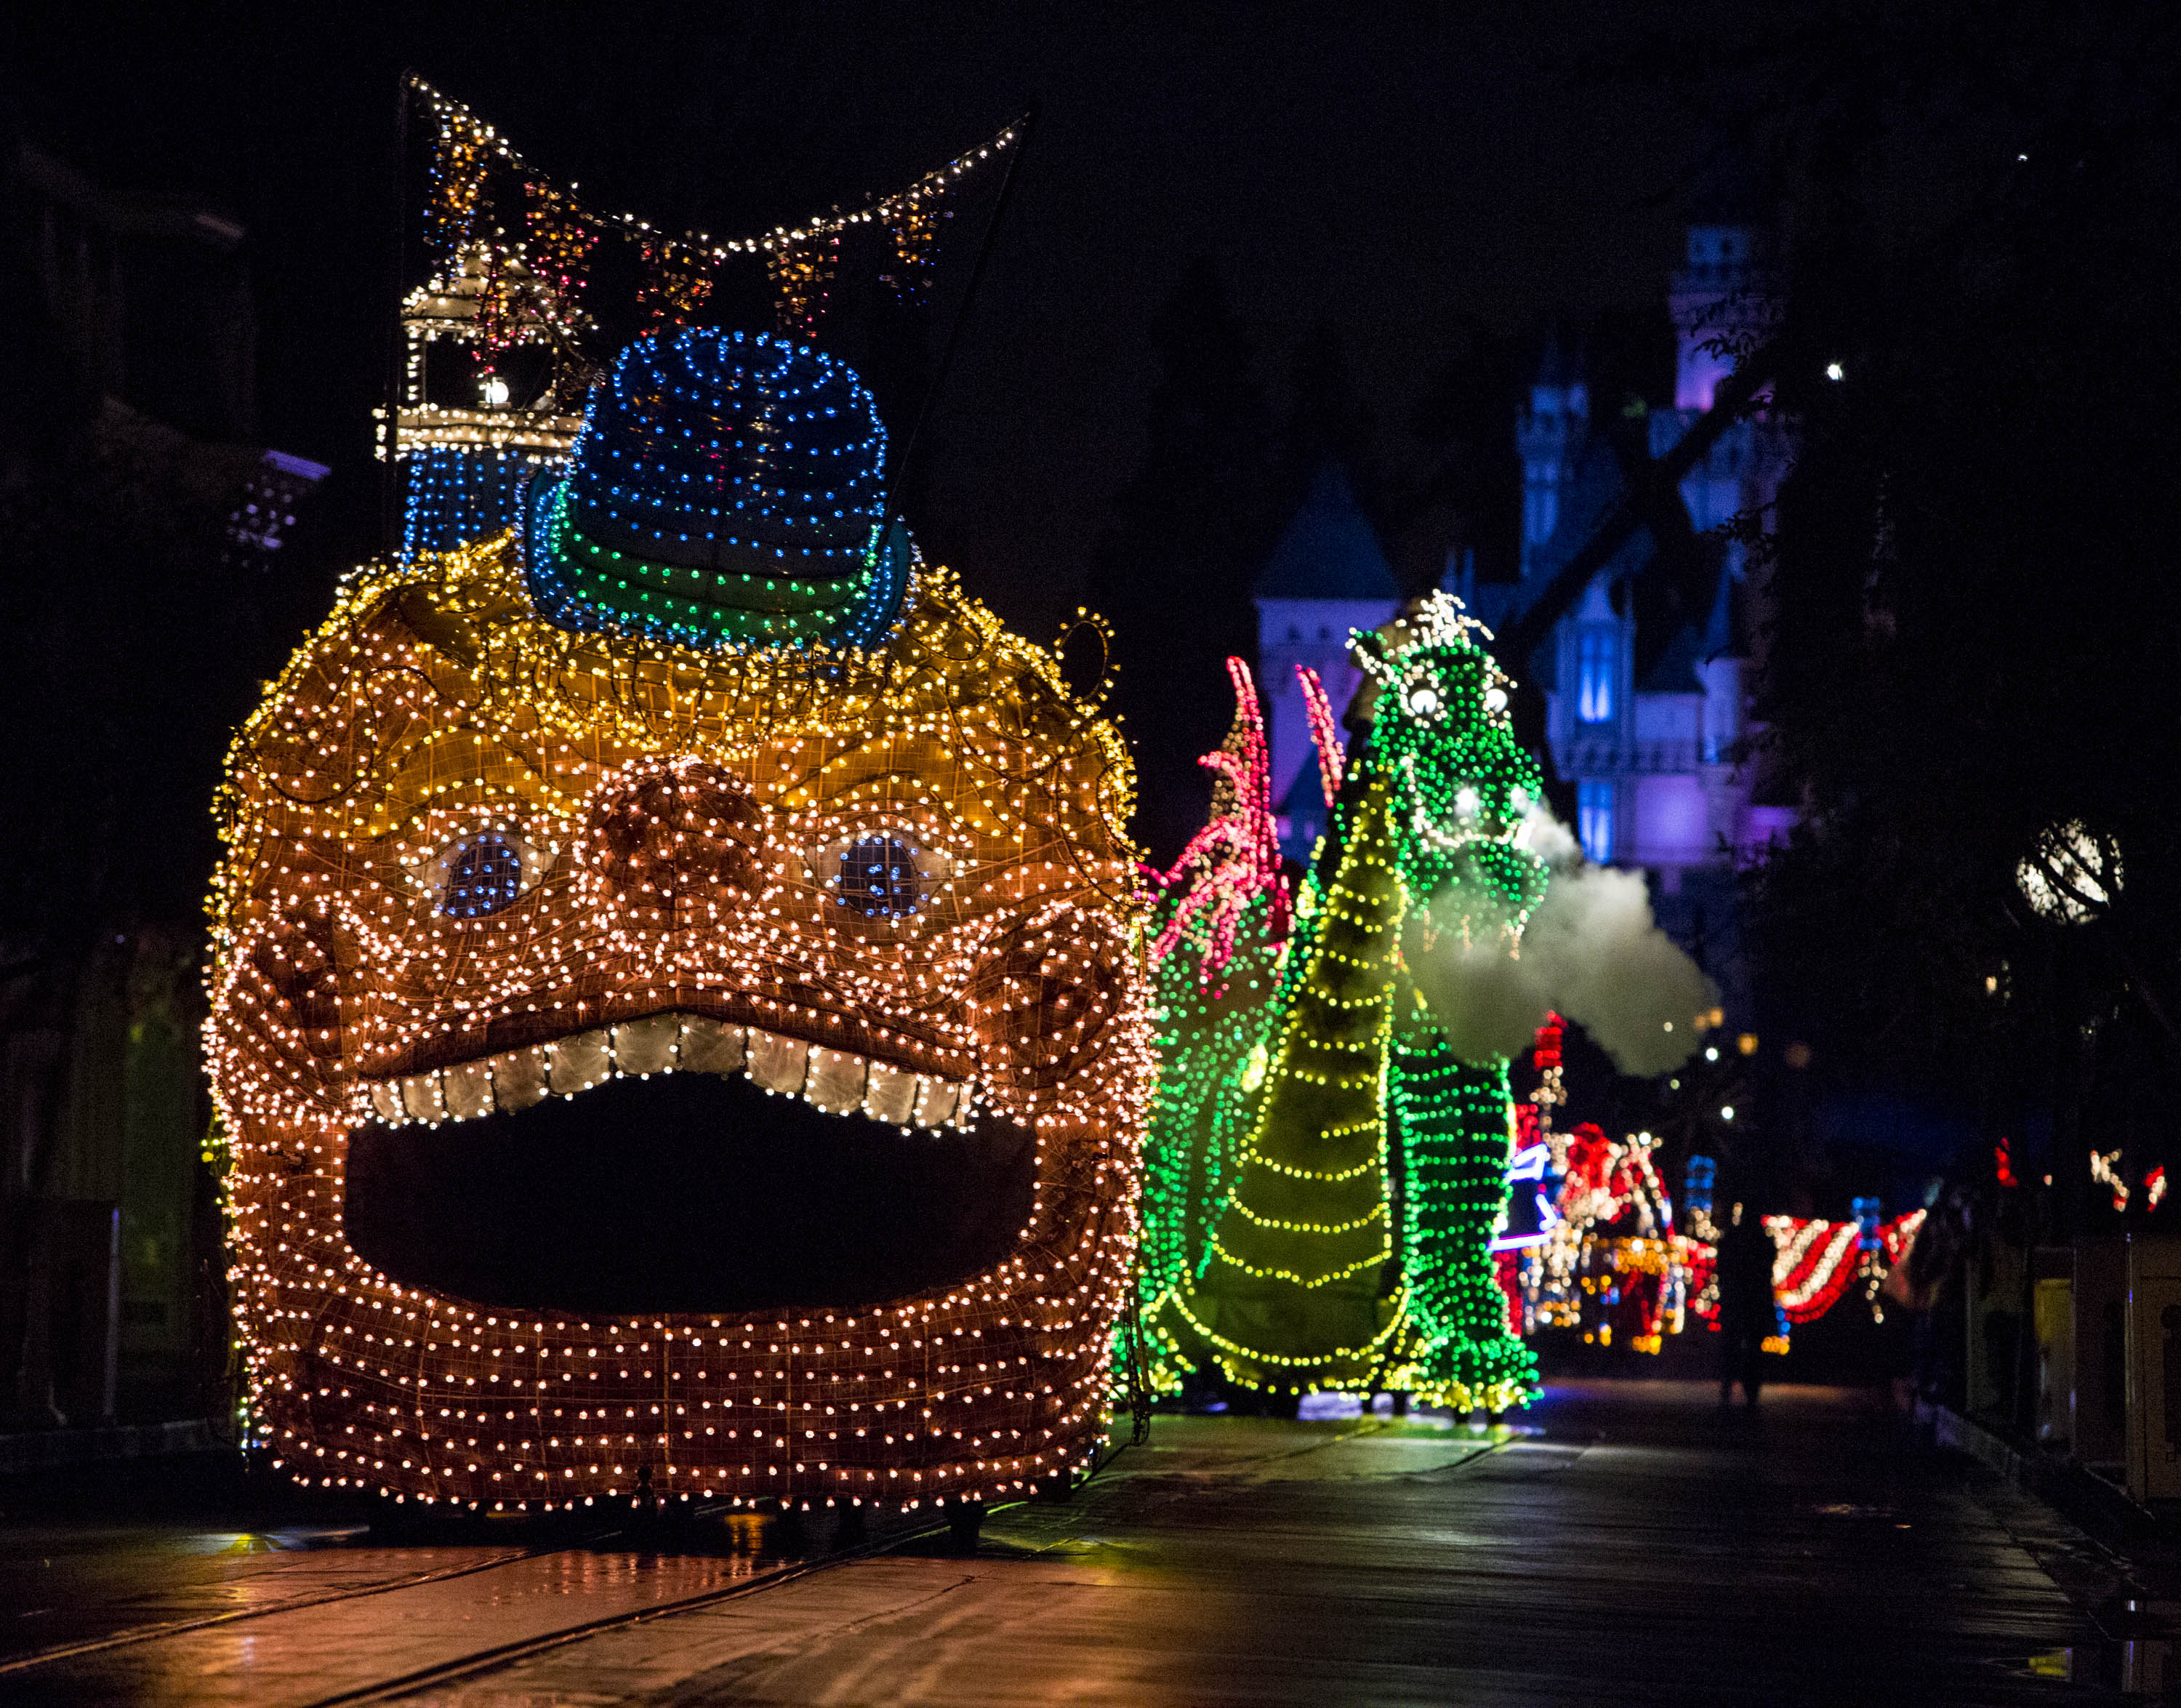 Disneyland Releases New Main Street Electrical Parade Photos Ahead of Its Return Tonight